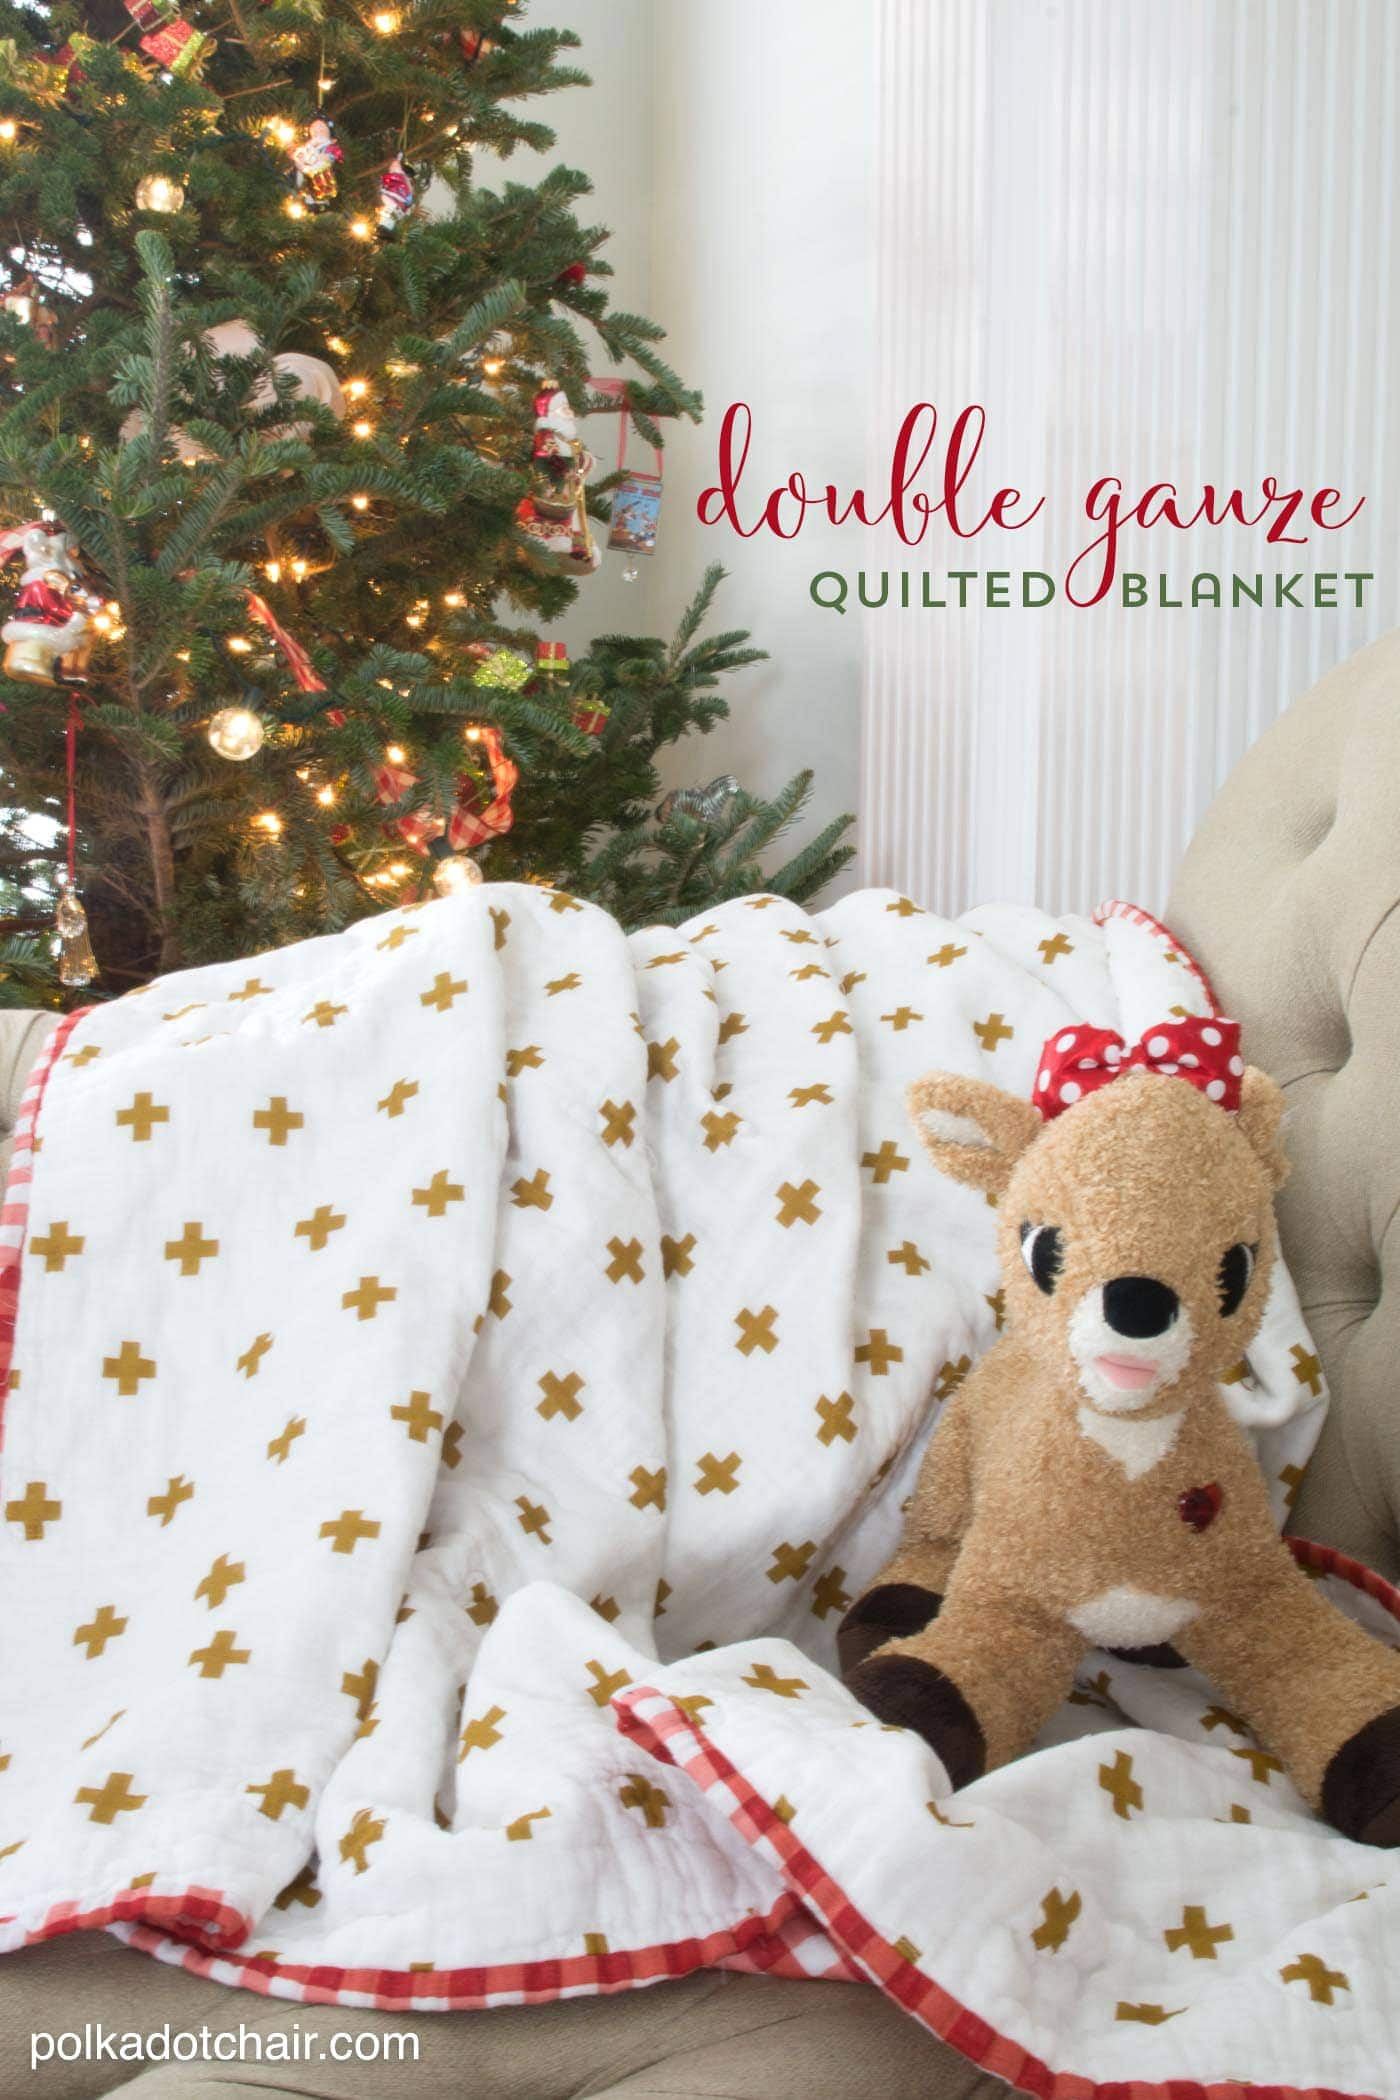 Double Gauze Quilted Blanket Tutorial The Polka Dot Chair